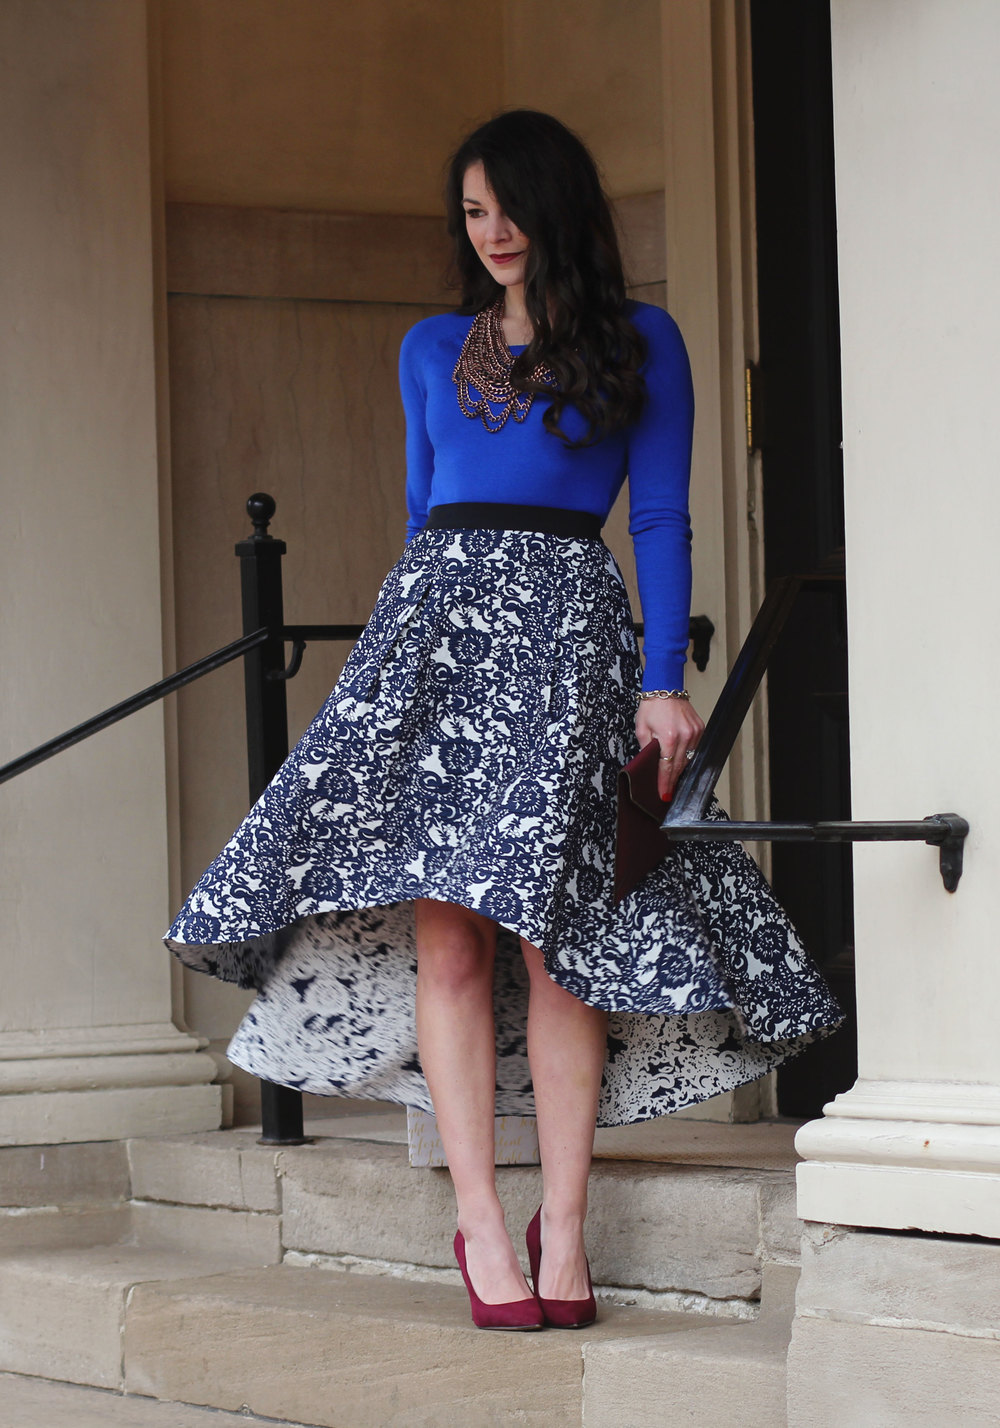 Holiday Outfit, Christmas Party Outfit, Anthropologie Vespertine High Low Skirt, Target Cobalt Blue Sweater, Wine Pumps, Rebecca Minkoff Envelope Clutch, Baublebar Courtney Bib Neclace